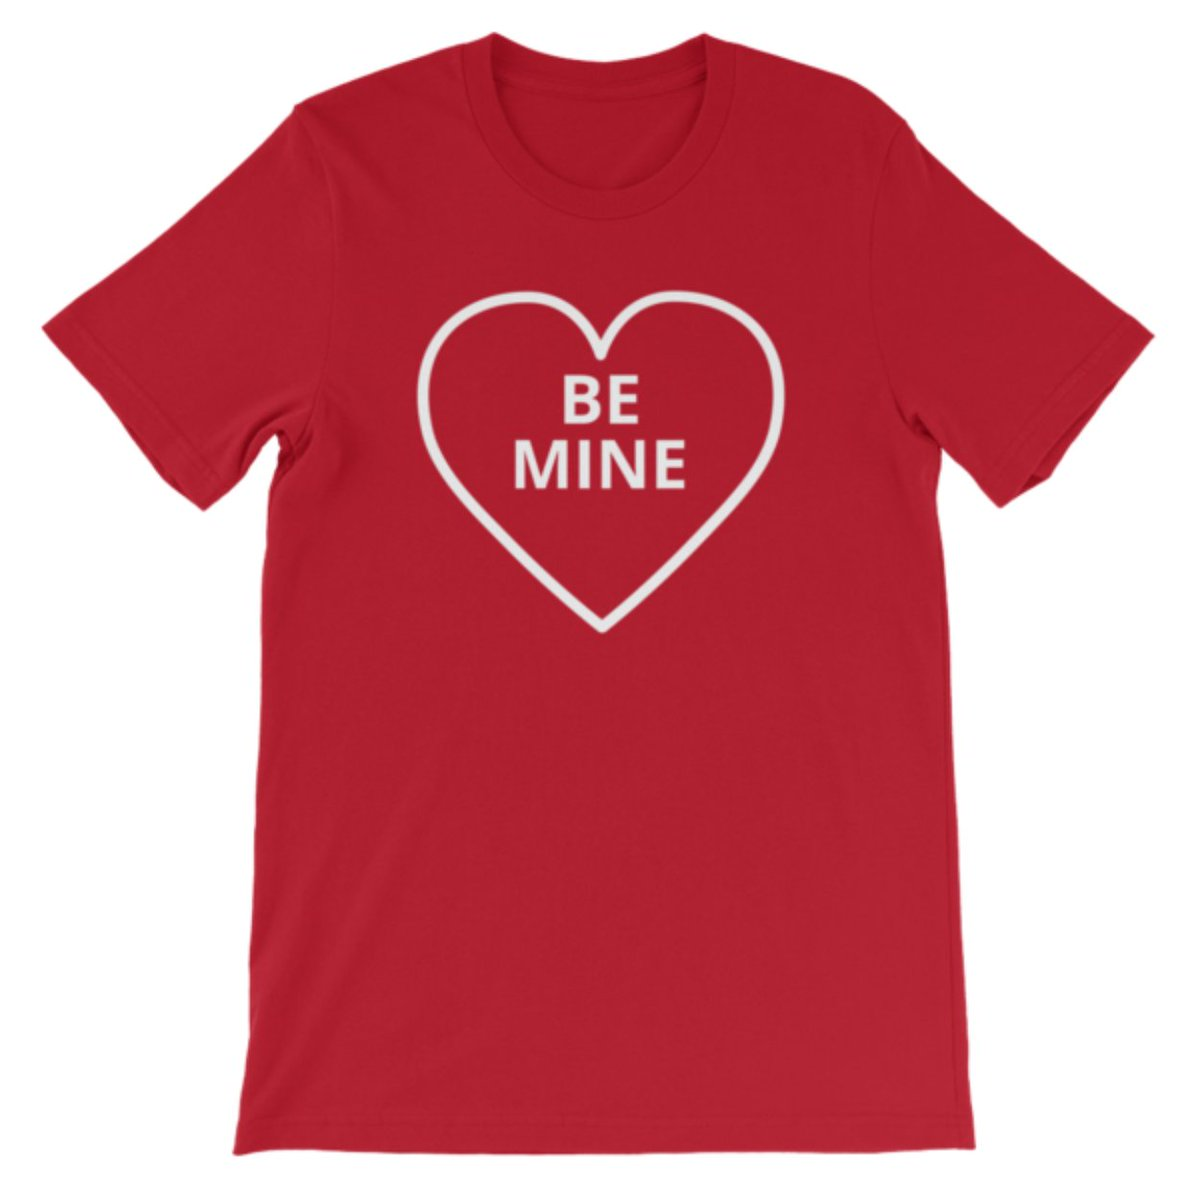 #bemine or customize your message https://t.co/c6orD3My8C . #imyours or customize your message https://t.co/813wnst9j6 . . #allographictees #candyhearts #ValentinesDay #ValentinesDayGift #ValentinesDayGifts #gift #giftidea #giftideas #valentine #bemyvalentine #conversationstarter https://t.co/SBDOxUduBM